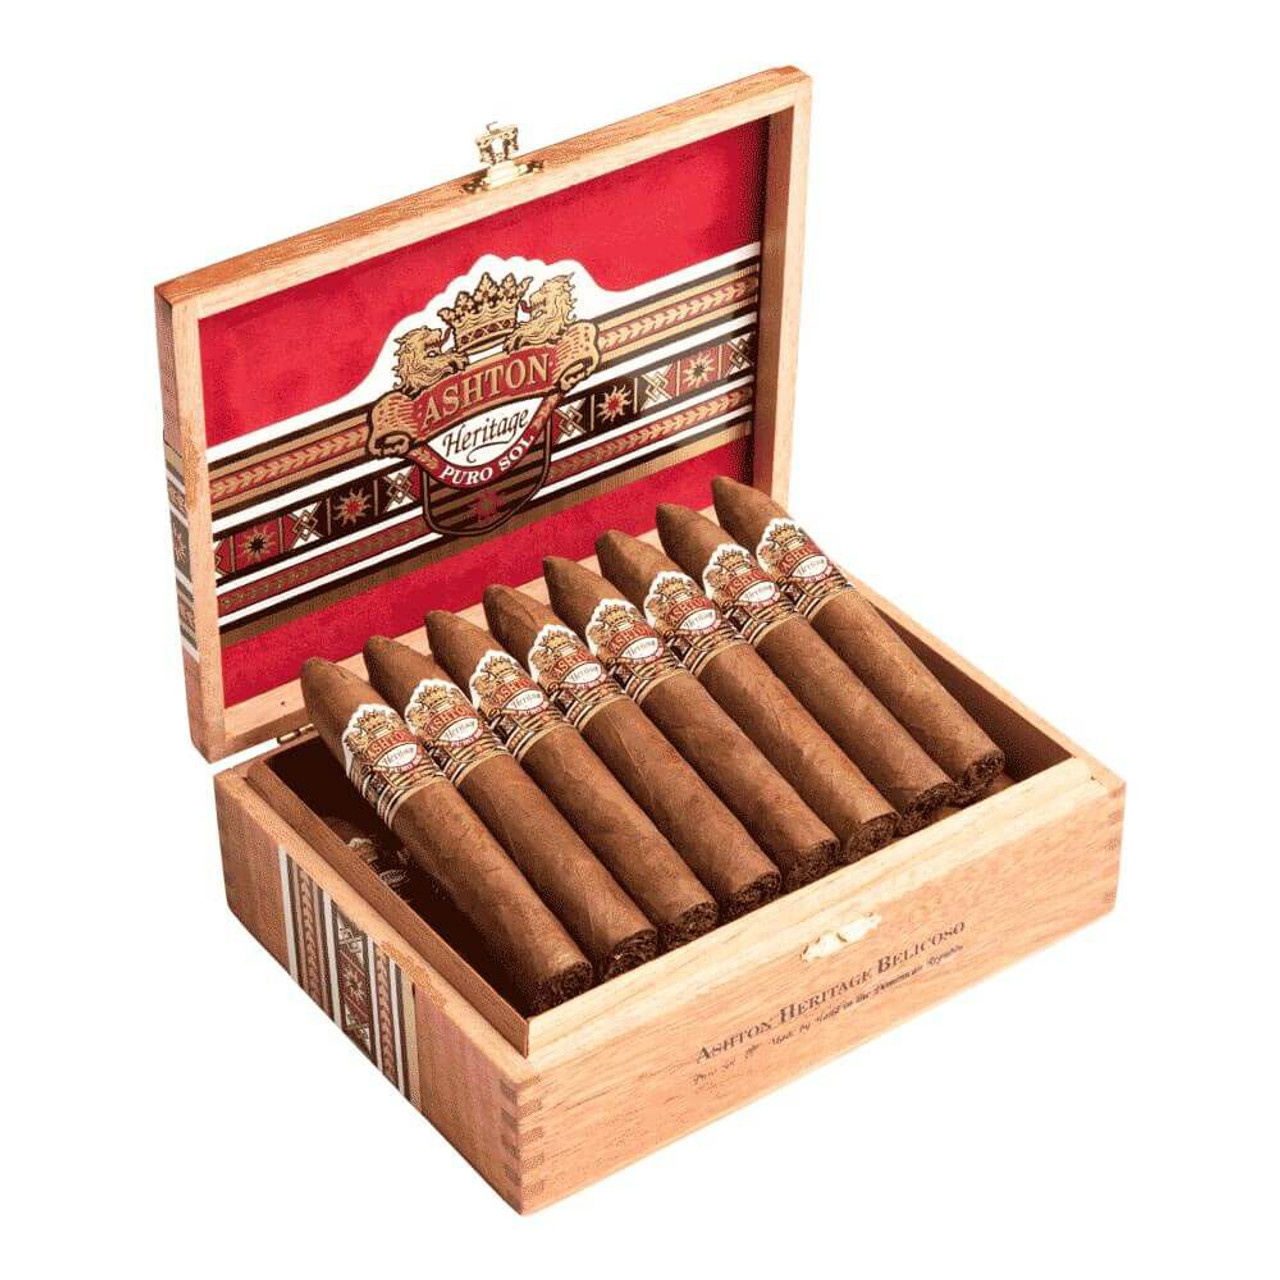 Ashton Heritage Puro Sol Belicoso #2 Cigars - 4.88 x 49 (Box of 25)